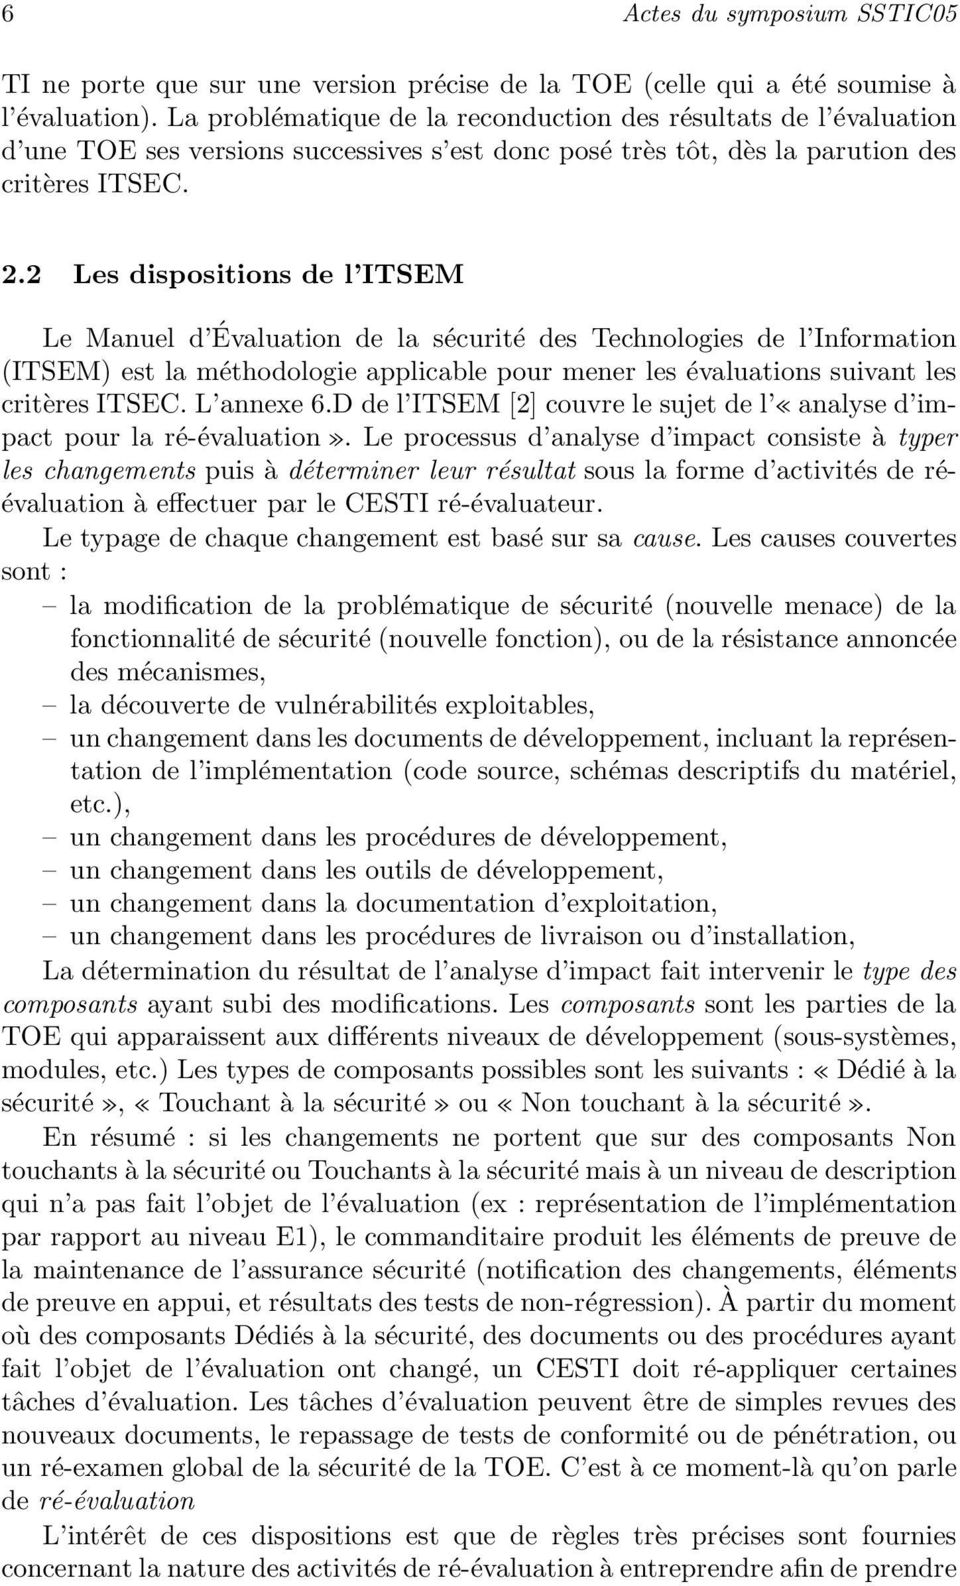 2 Les dispositions de l ITSEM Le Manuel d Évaluation de la sécurité des Technologies de l Information (ITSEM) est la méthodologie applicable pour mener les évaluations suivant les critères ITSEC.